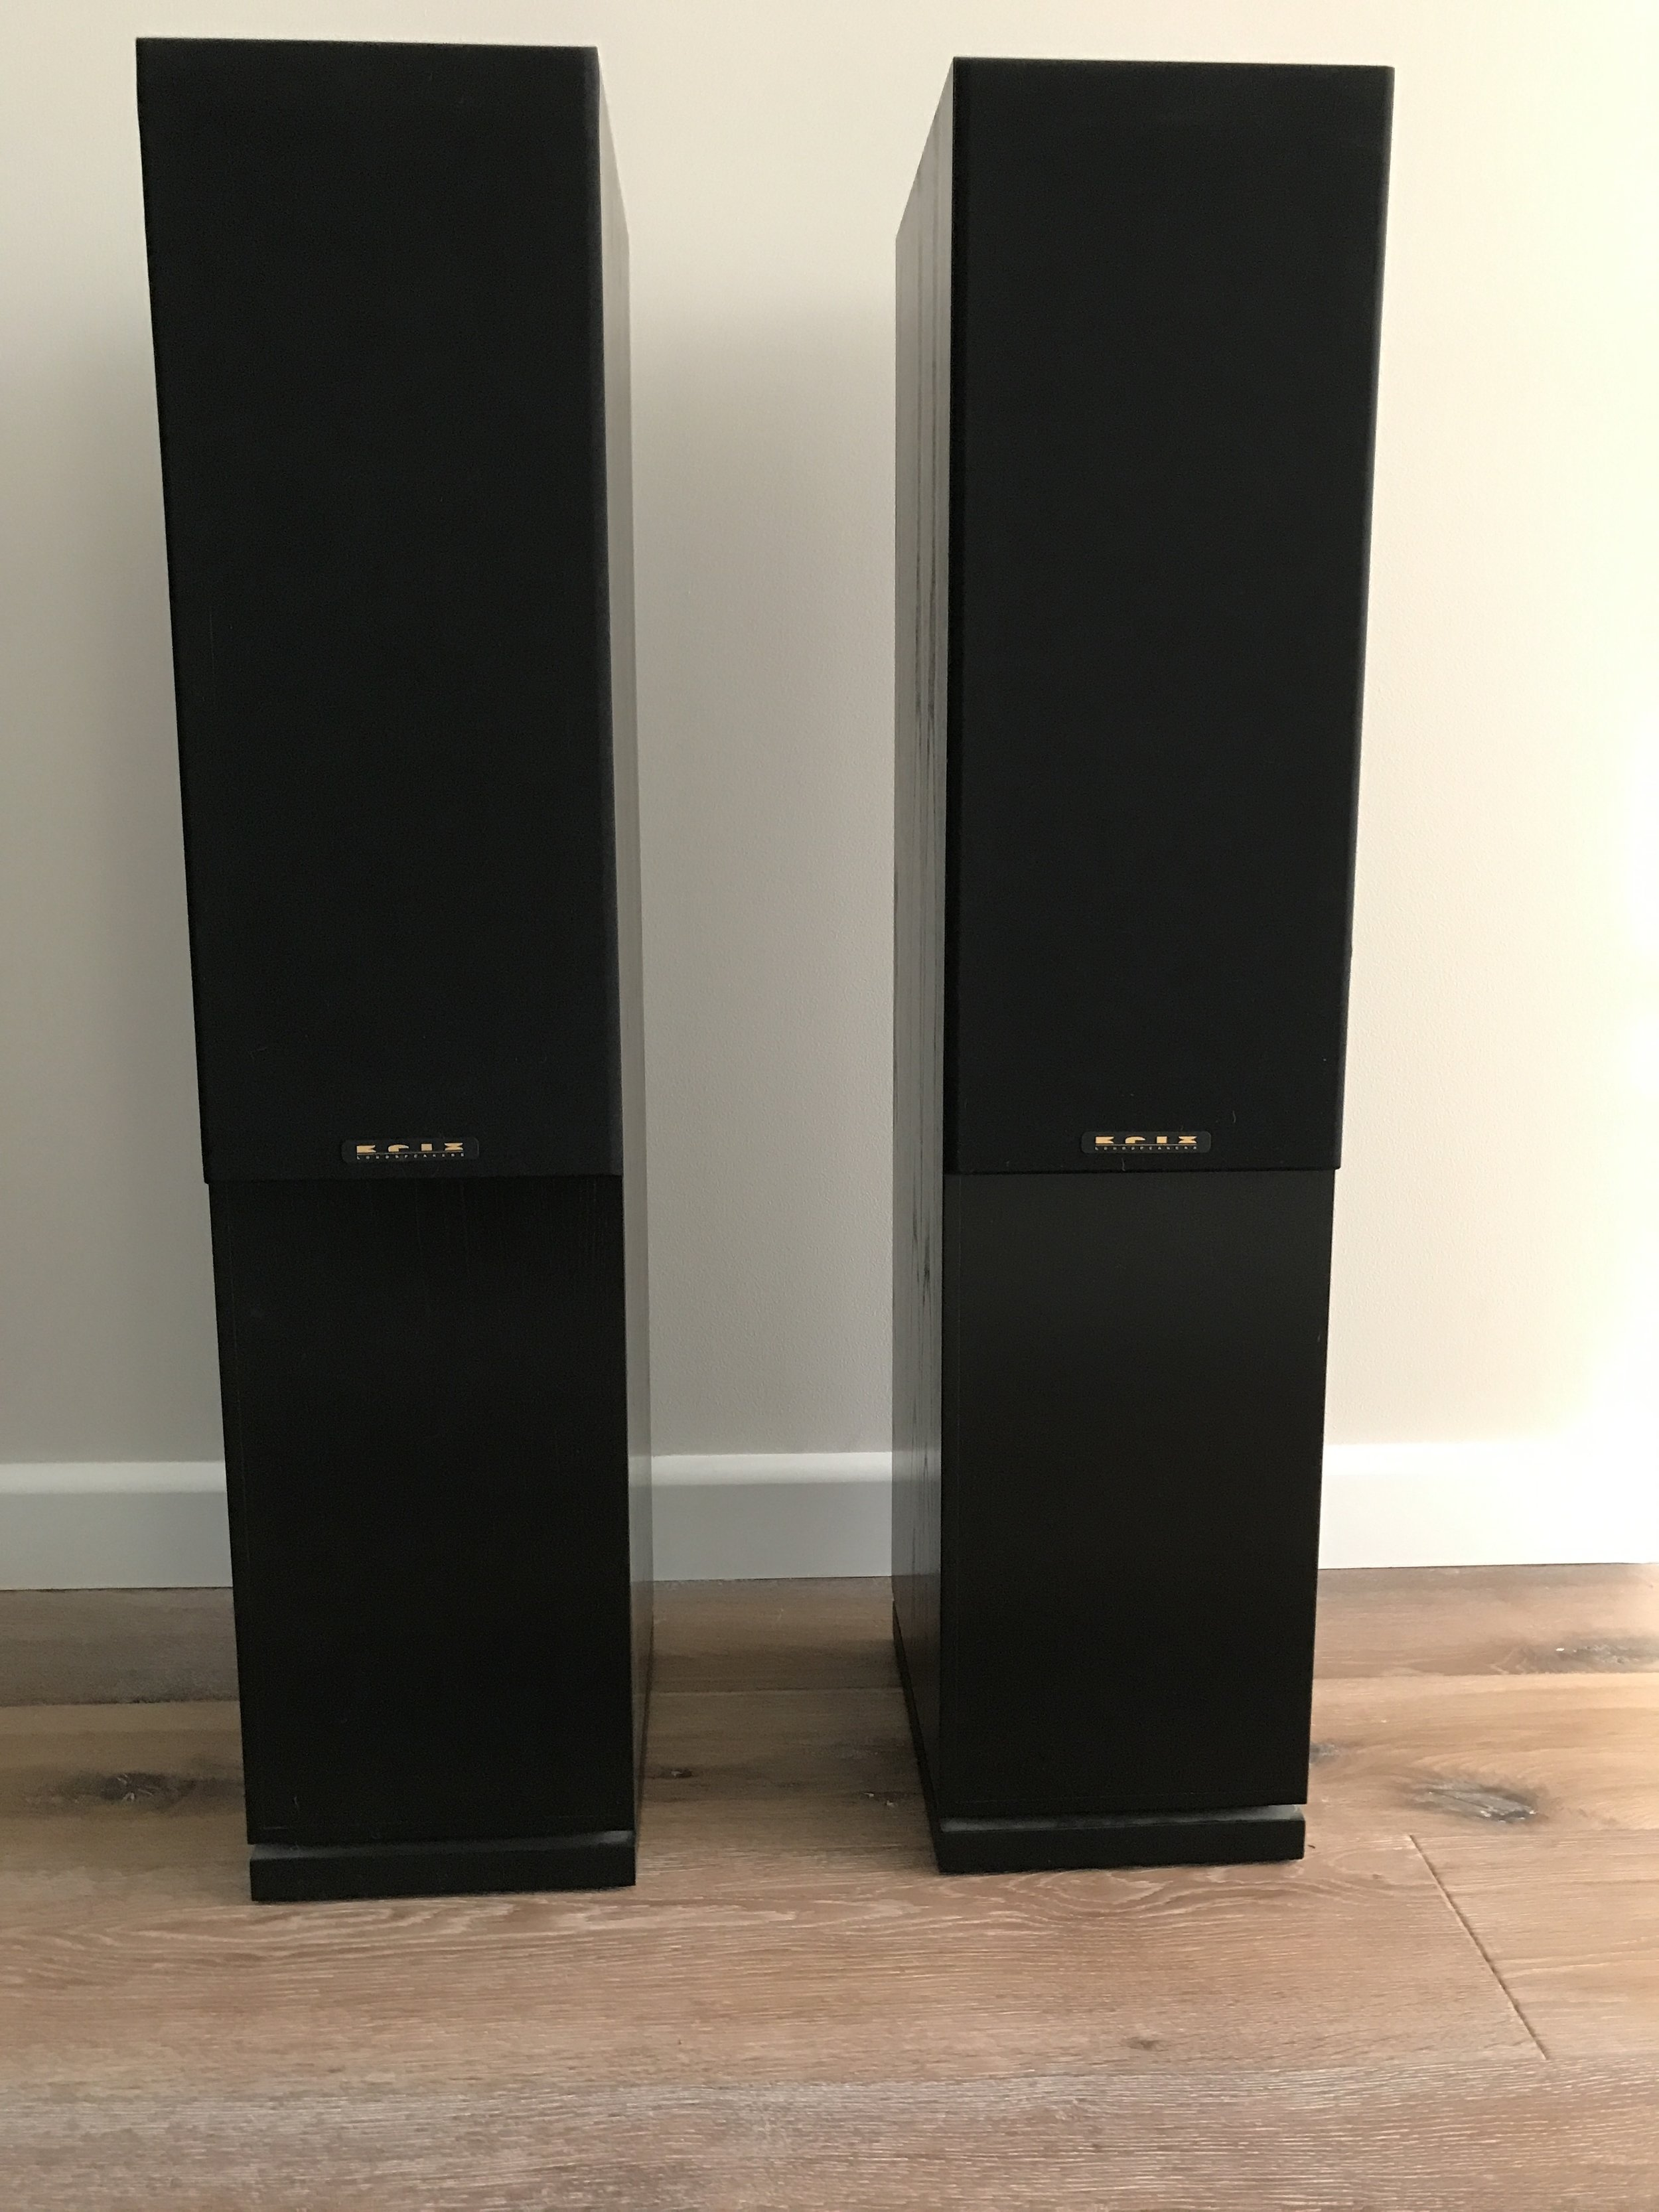 FOR SALE KRIX LYRIX SPEAKERS $1,495 Pair